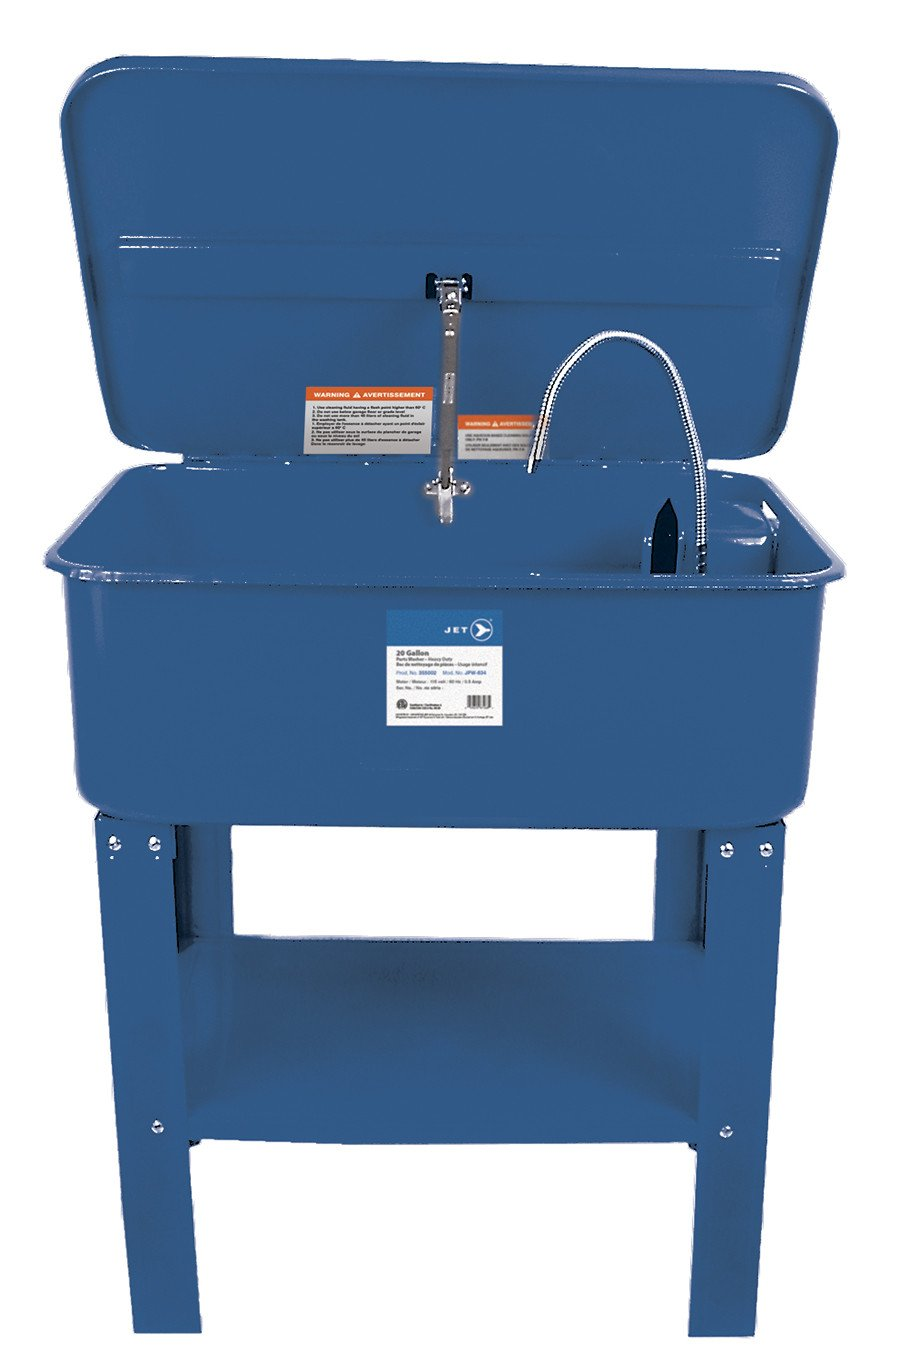 Jet JPW-20 Heavy Duty Parts Washer | 20 Gallon Automotive Tools - Cleanflow